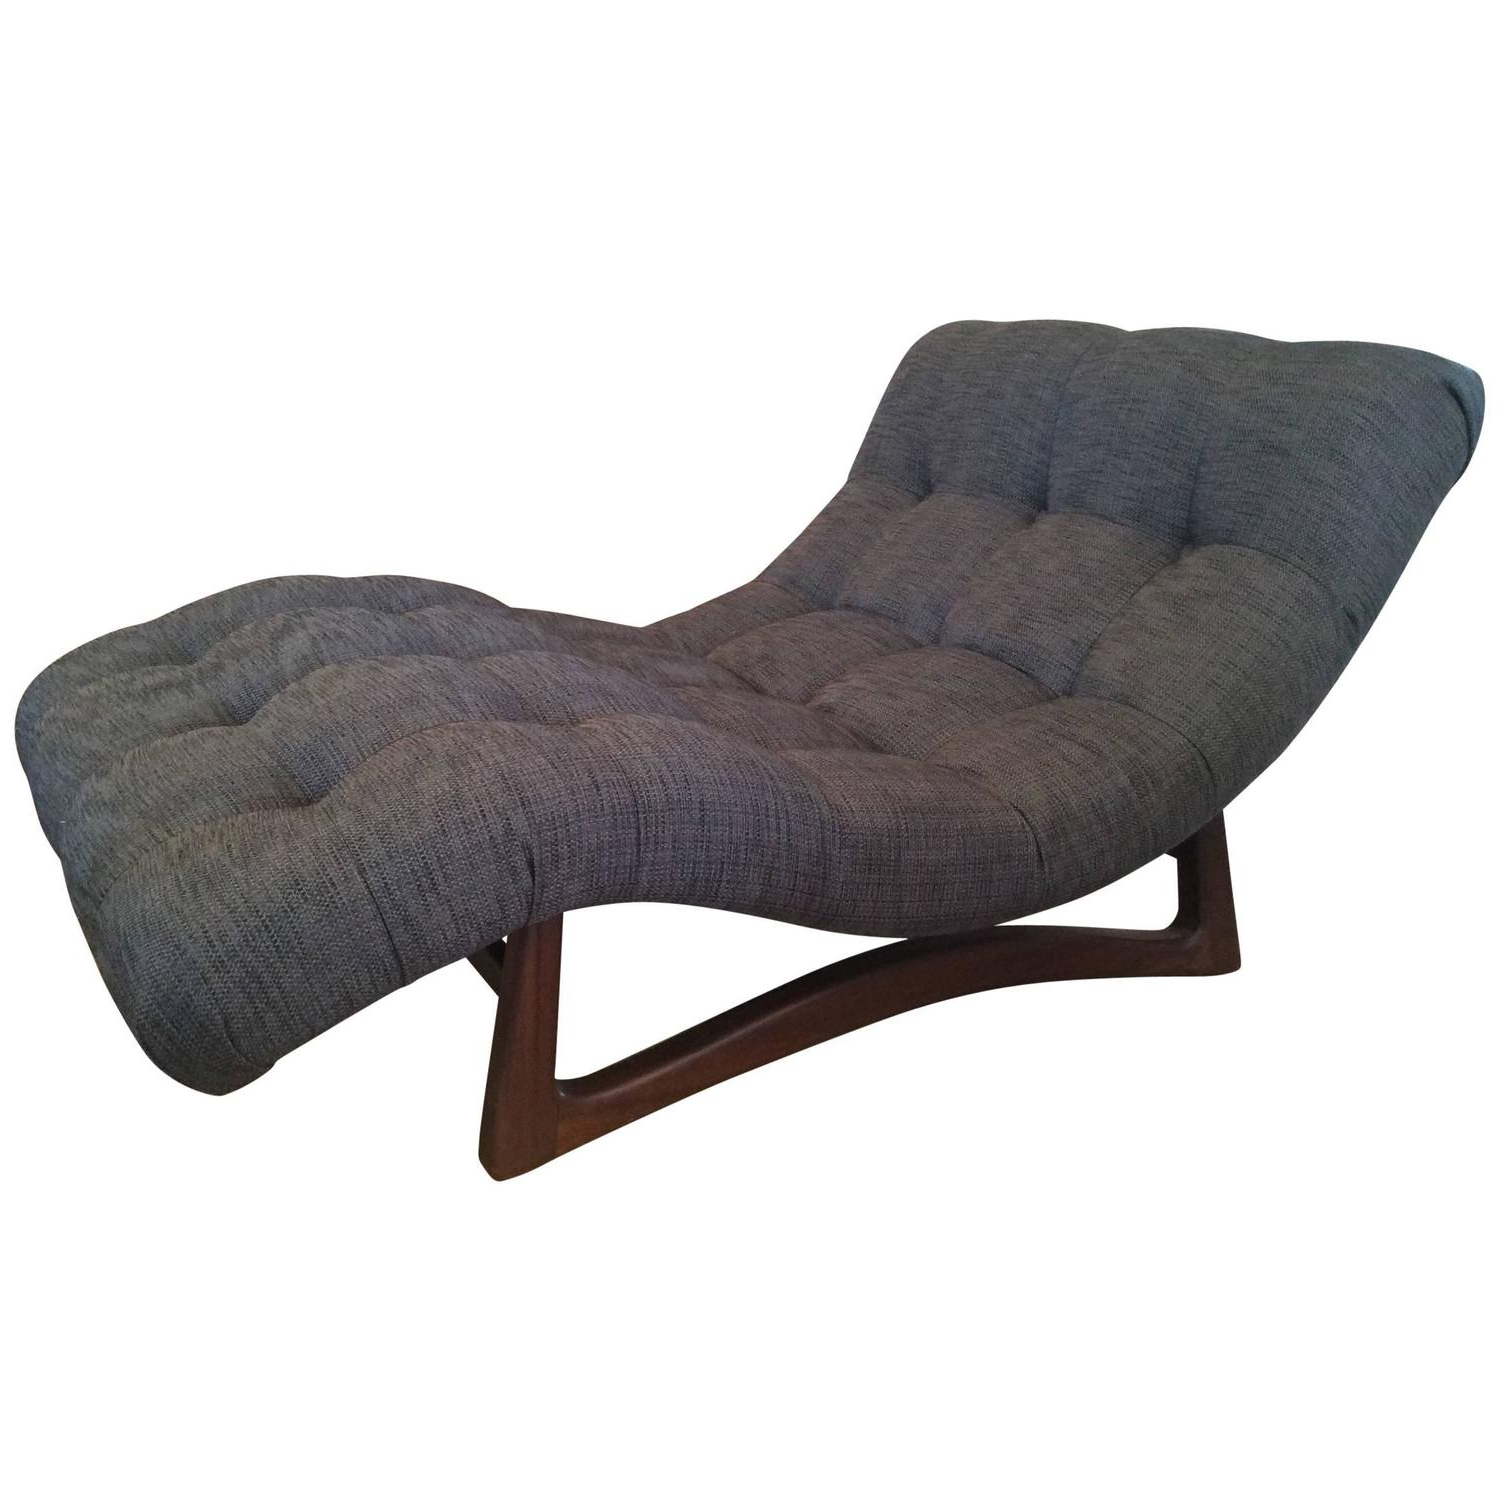 Vintage Adrian Pearsall Curved Chaise Lounge With Walnut Throughout Most Recently Released Curved Folding Chaise Loungers (View 24 of 25)